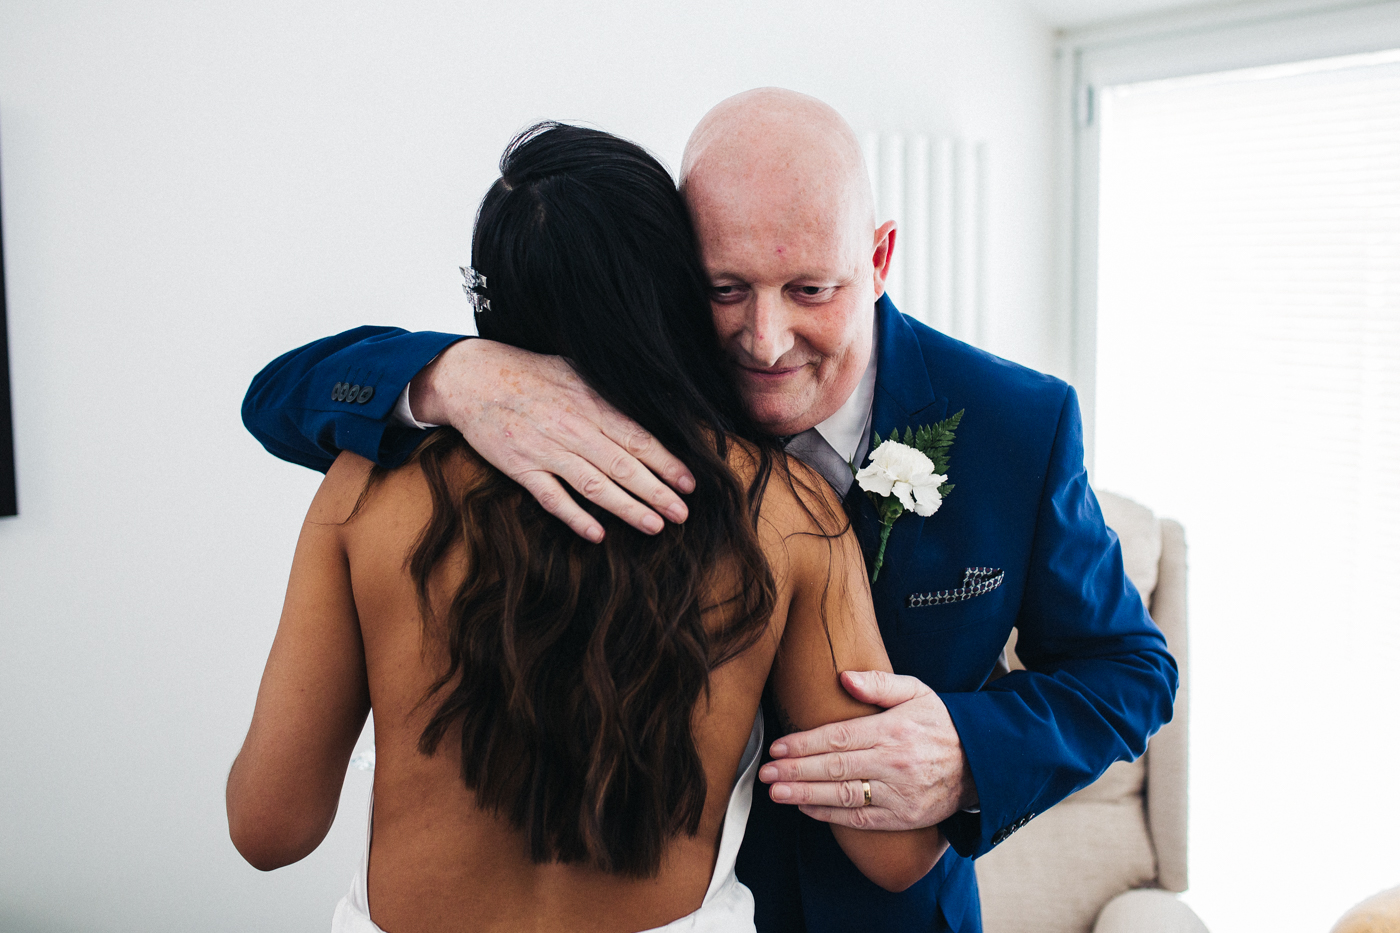 the bride and her dad hug during the speeches. relaxed teesside middlesbrough wedding photographer, wedding at home